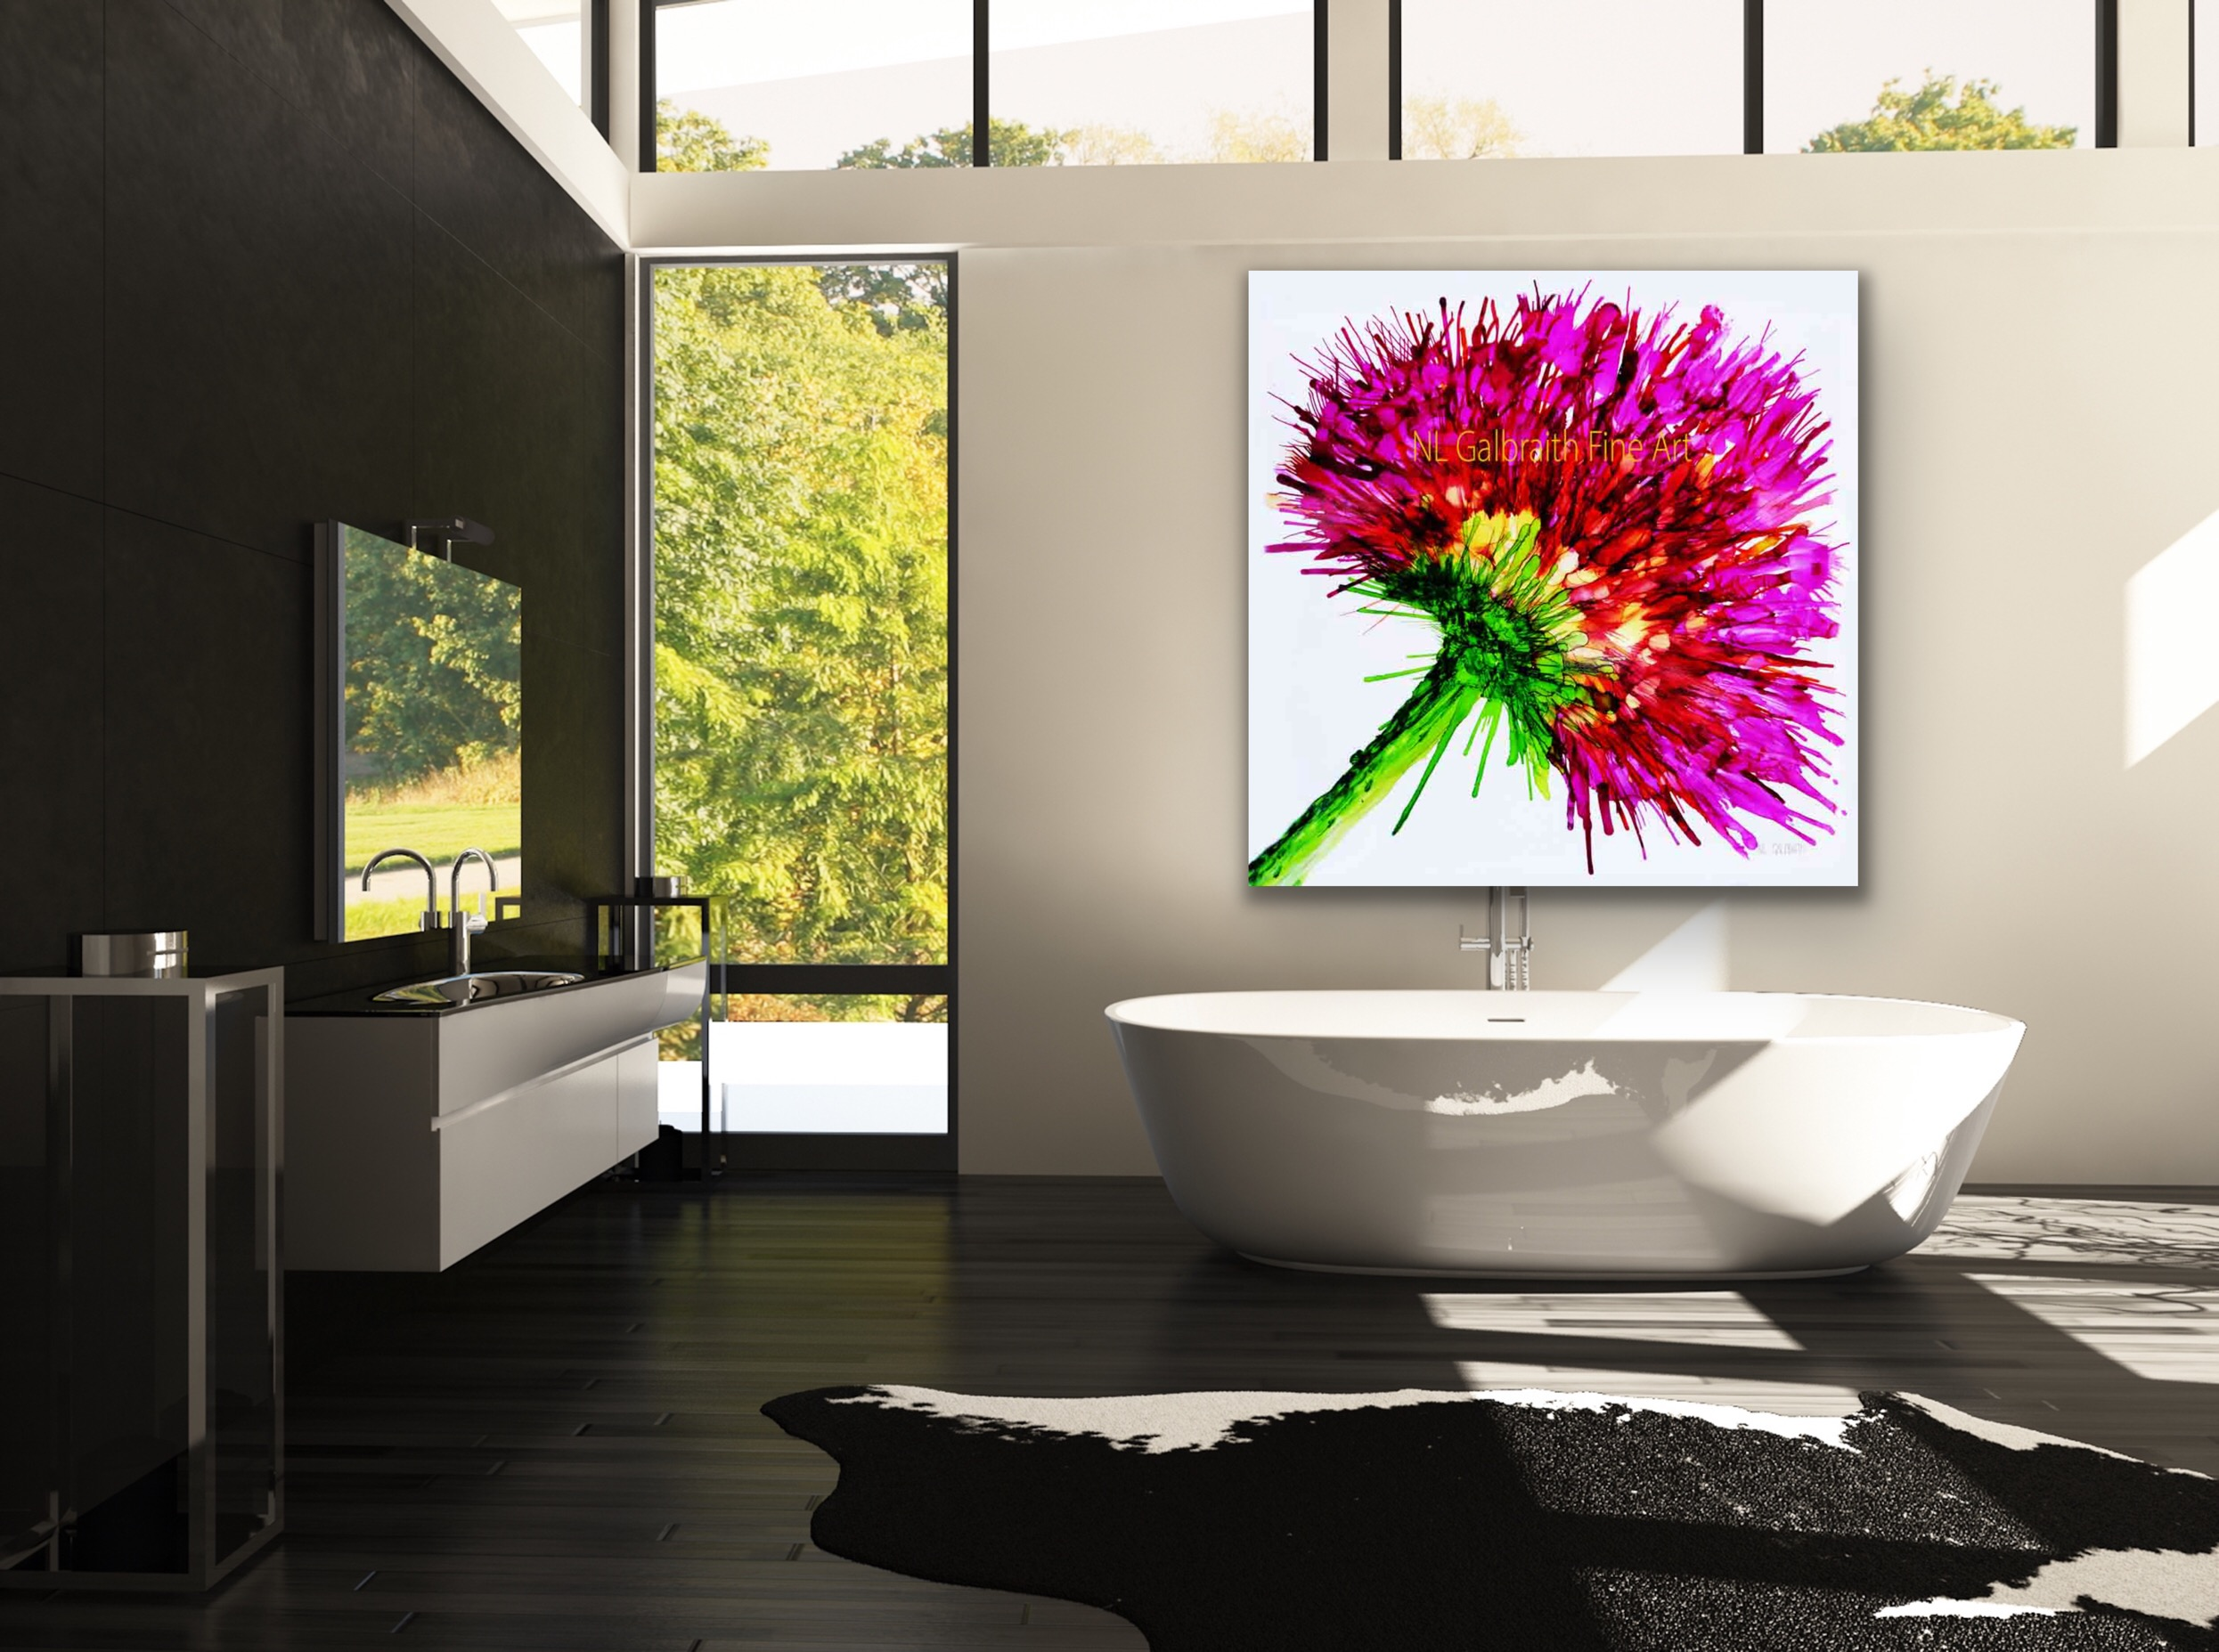 Oversized Graphic, Pink Flower in a Bathroom